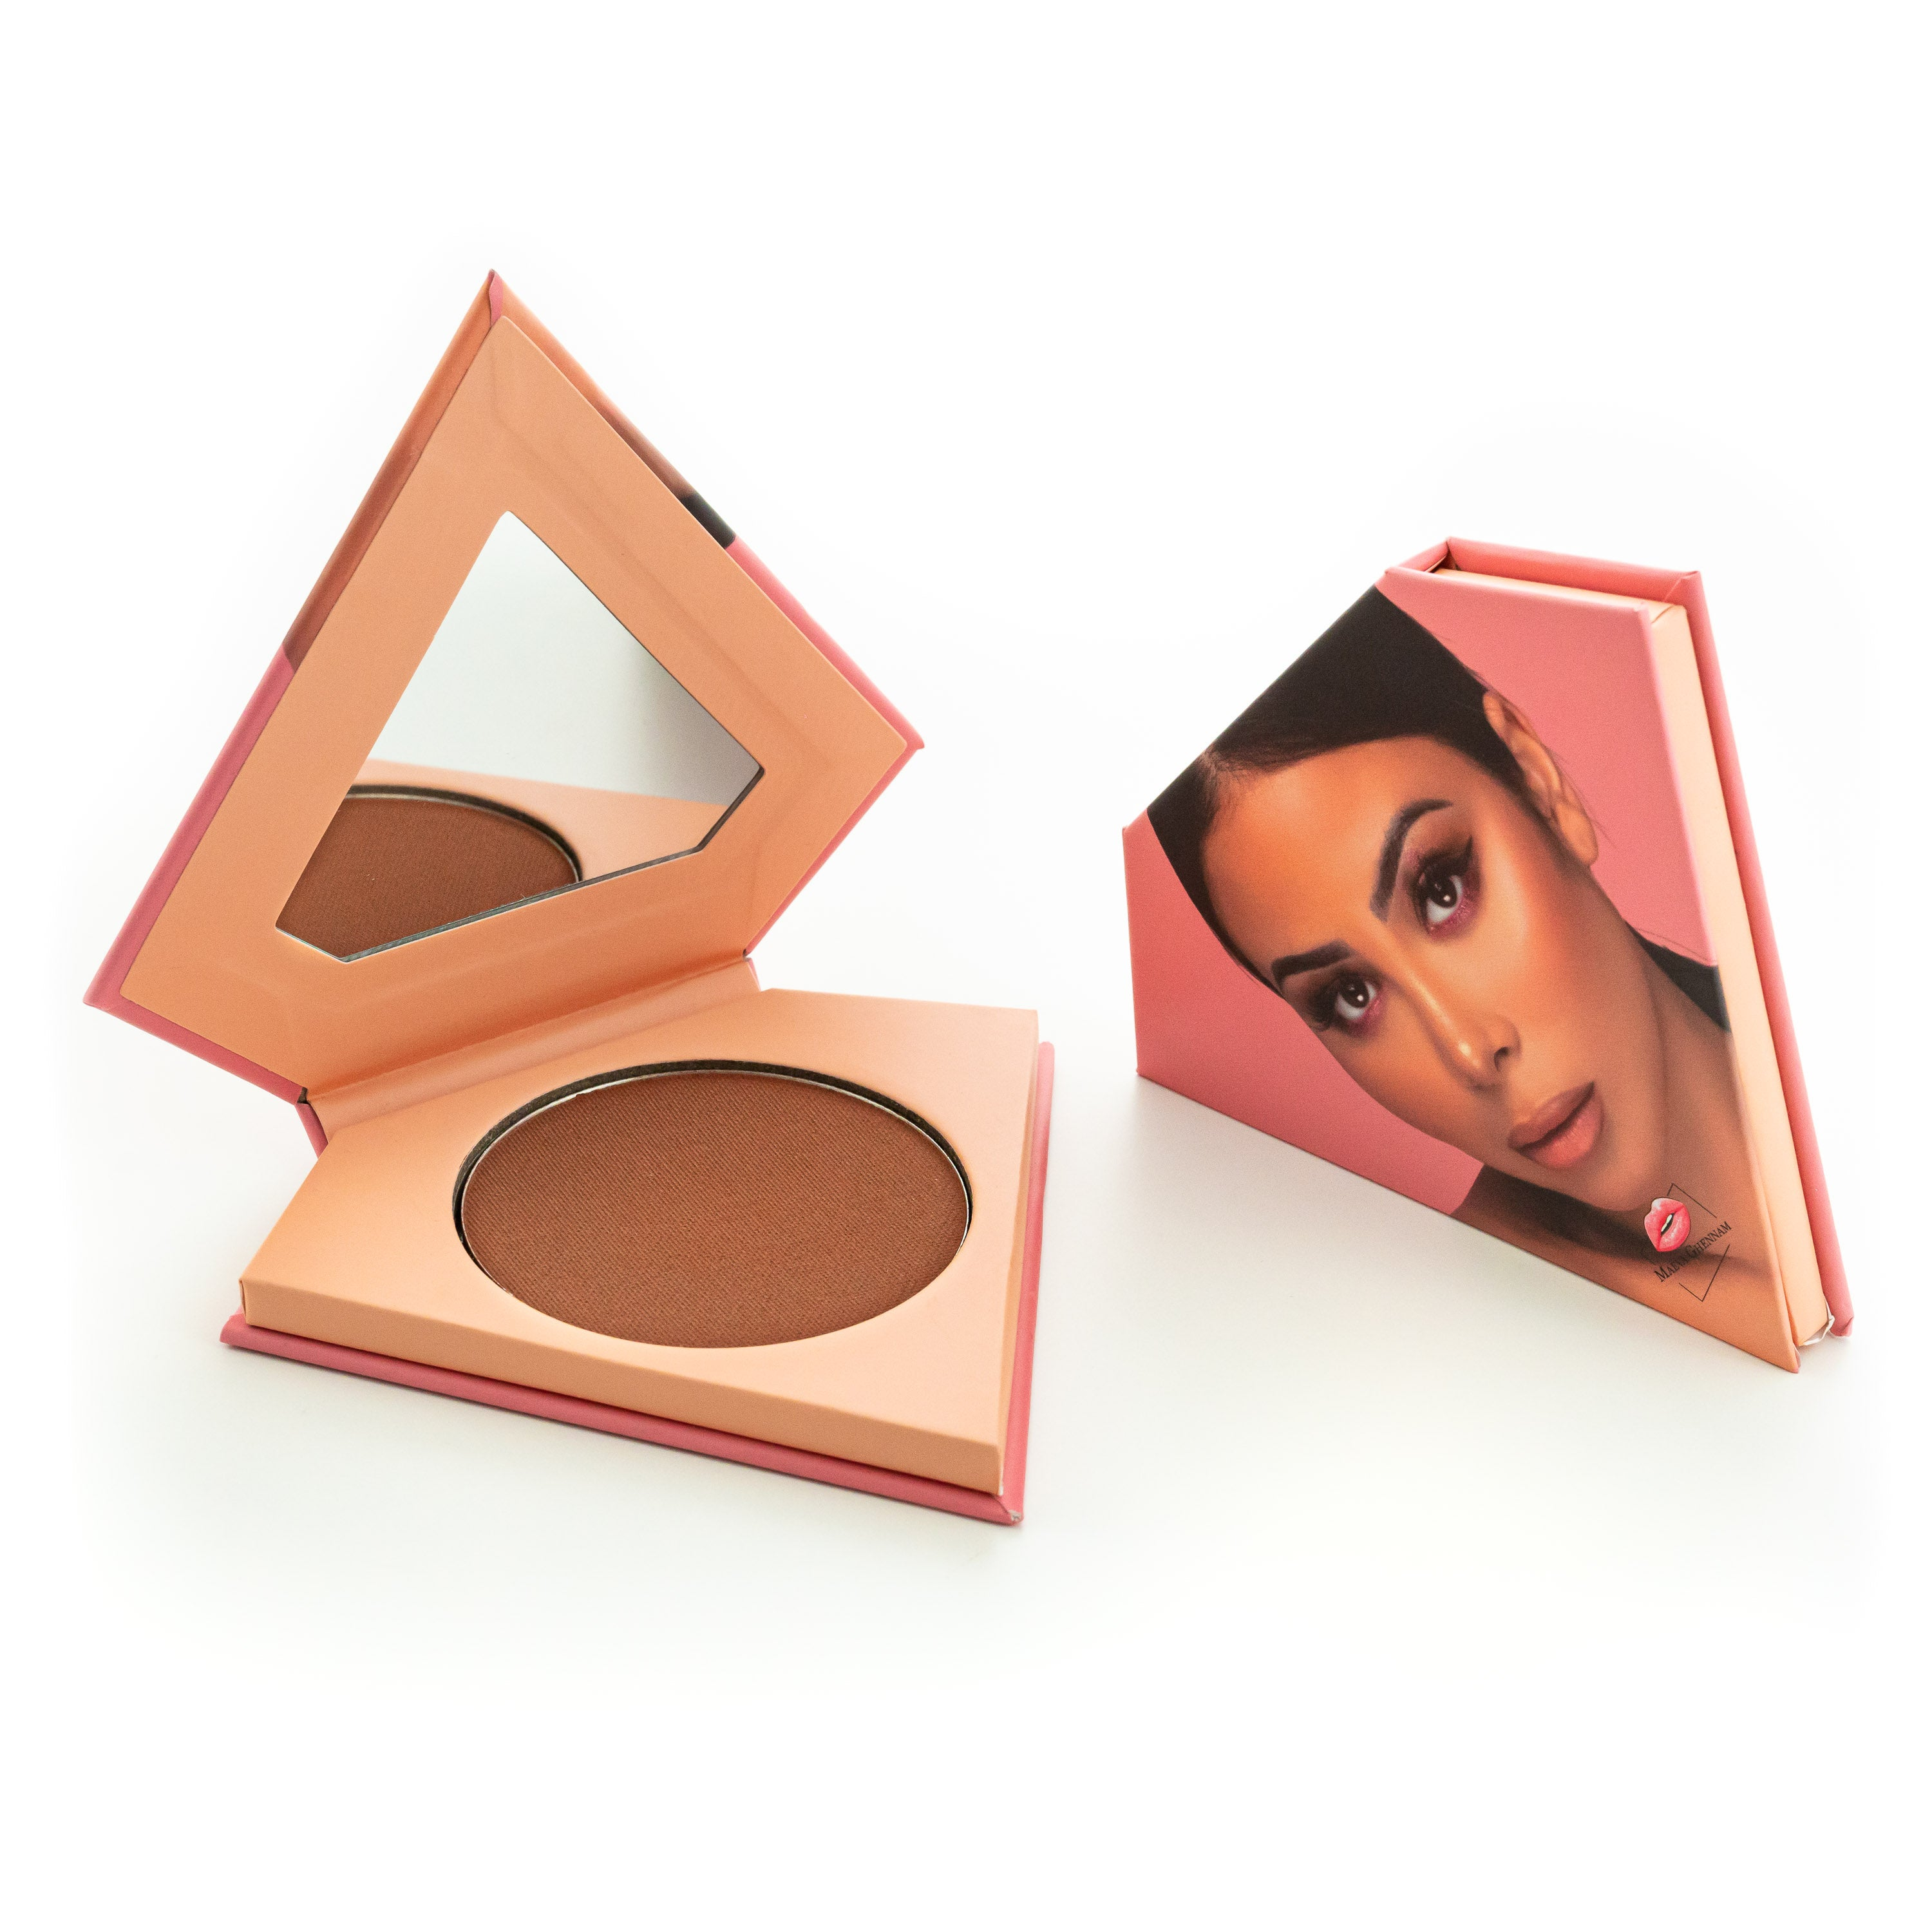 Compact powder - Anaya